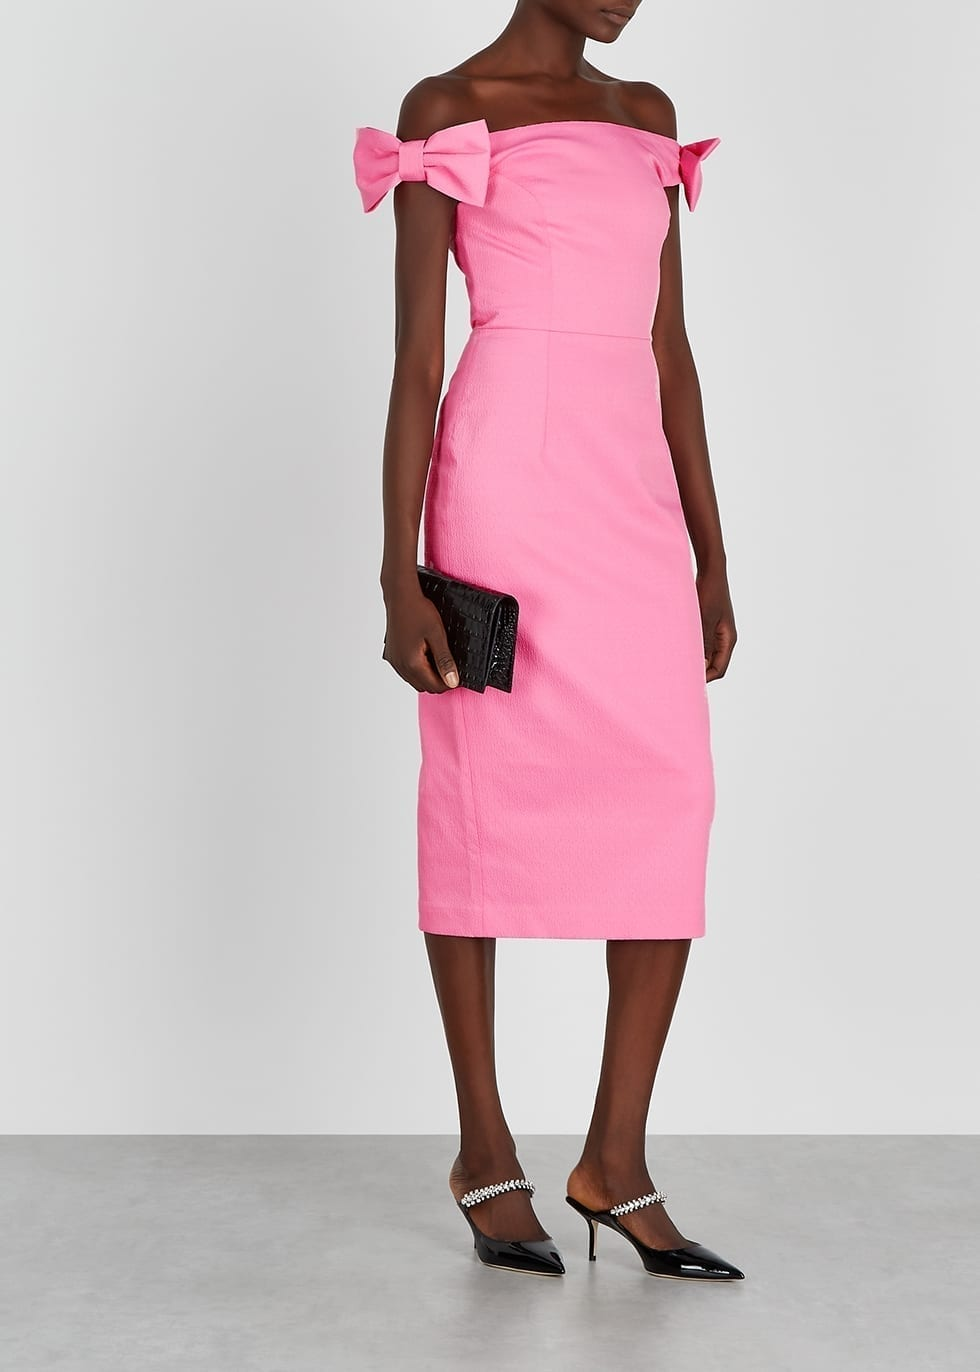 REBECCA VALLANCE Winslow Pink Off-the-shoulder Midi Dress